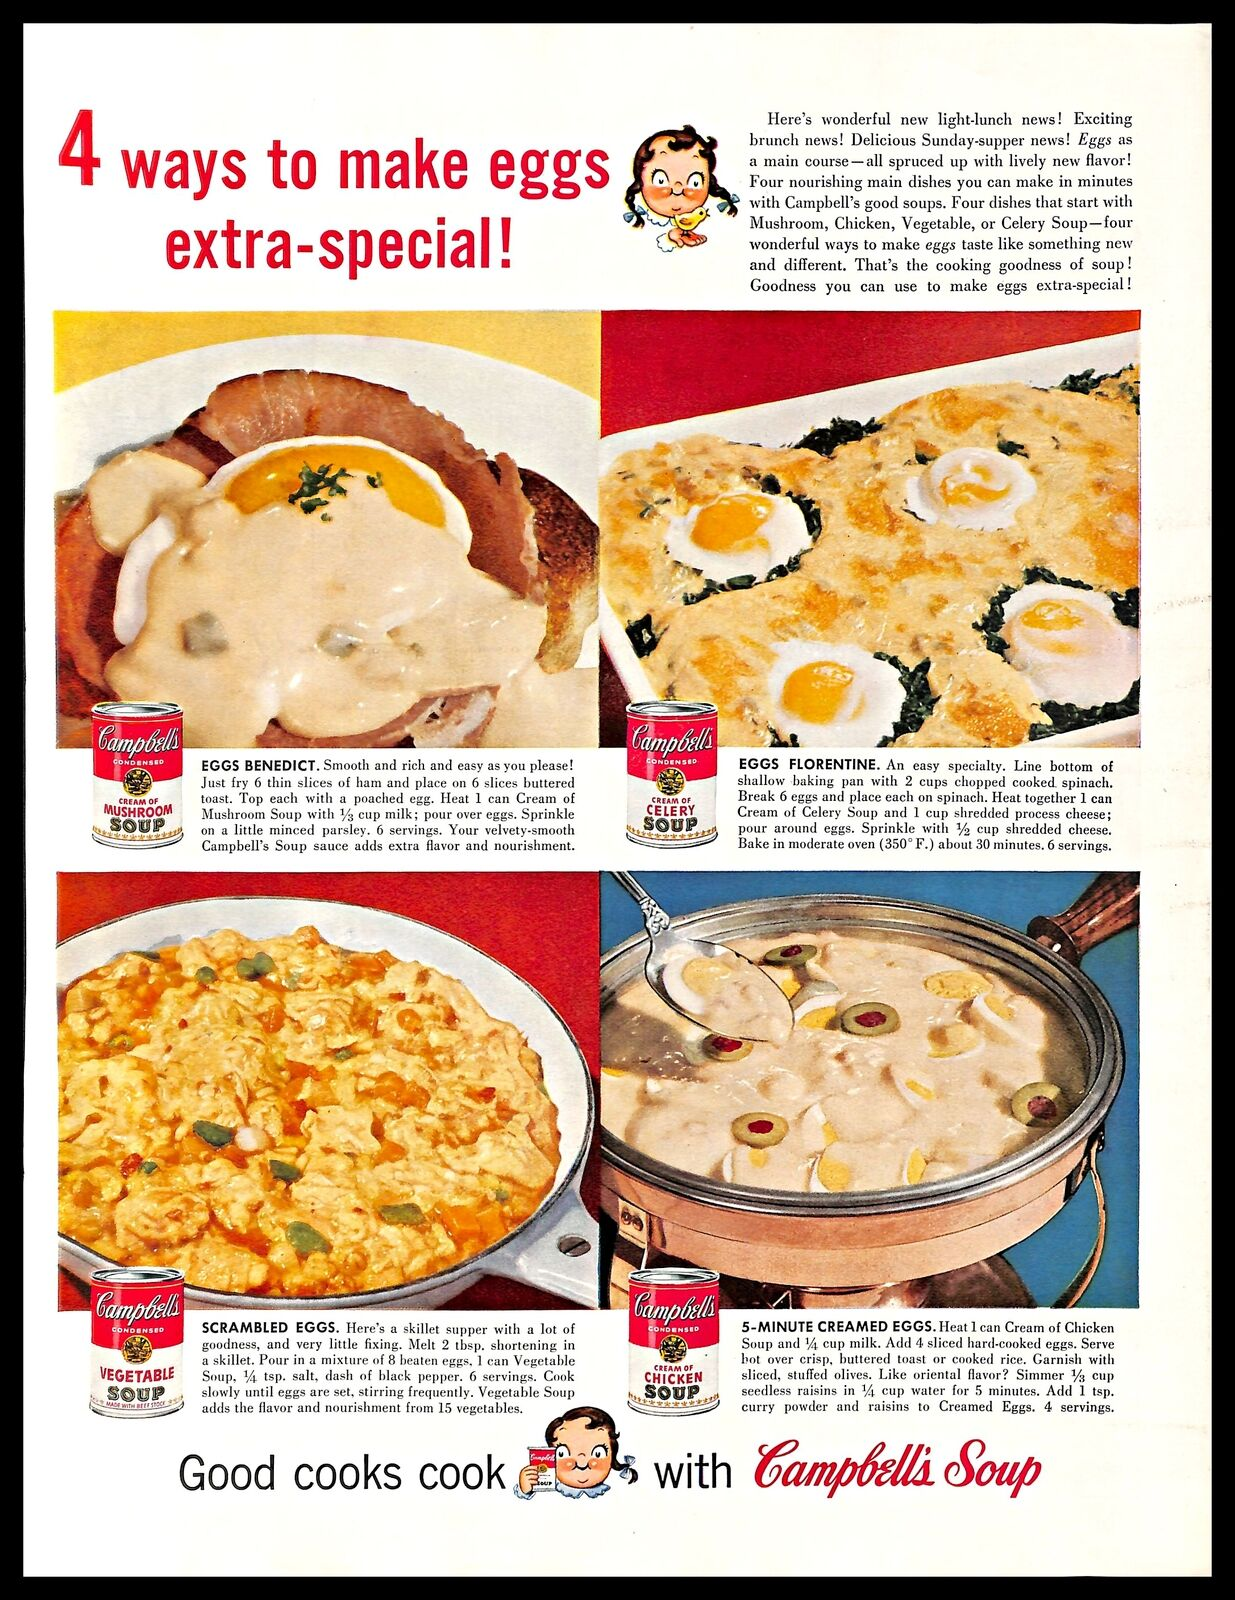 A Campbell's Soup advertisement including egg recipes